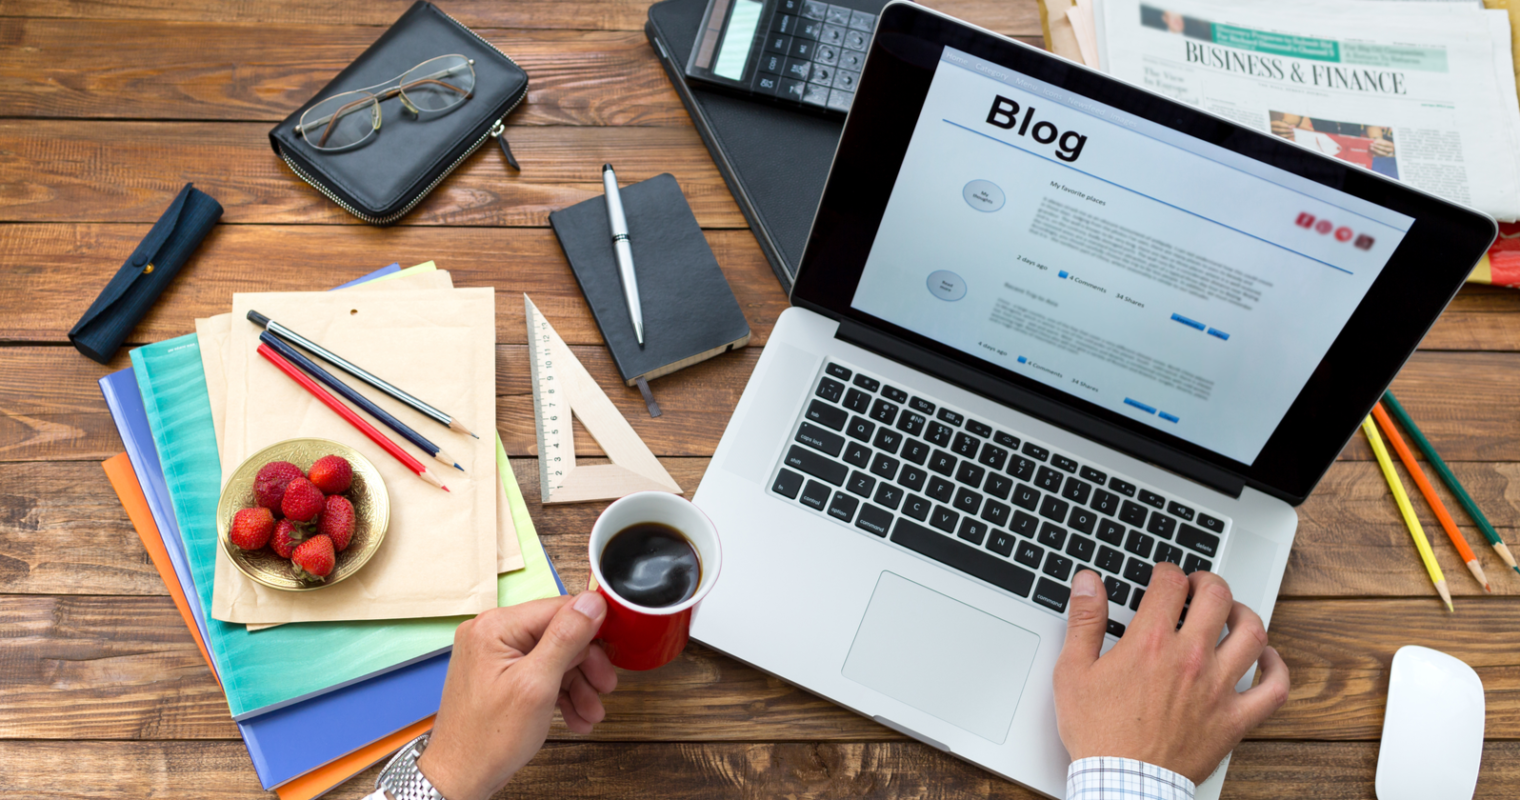 7 Ways Businesses Benefit from Blogging